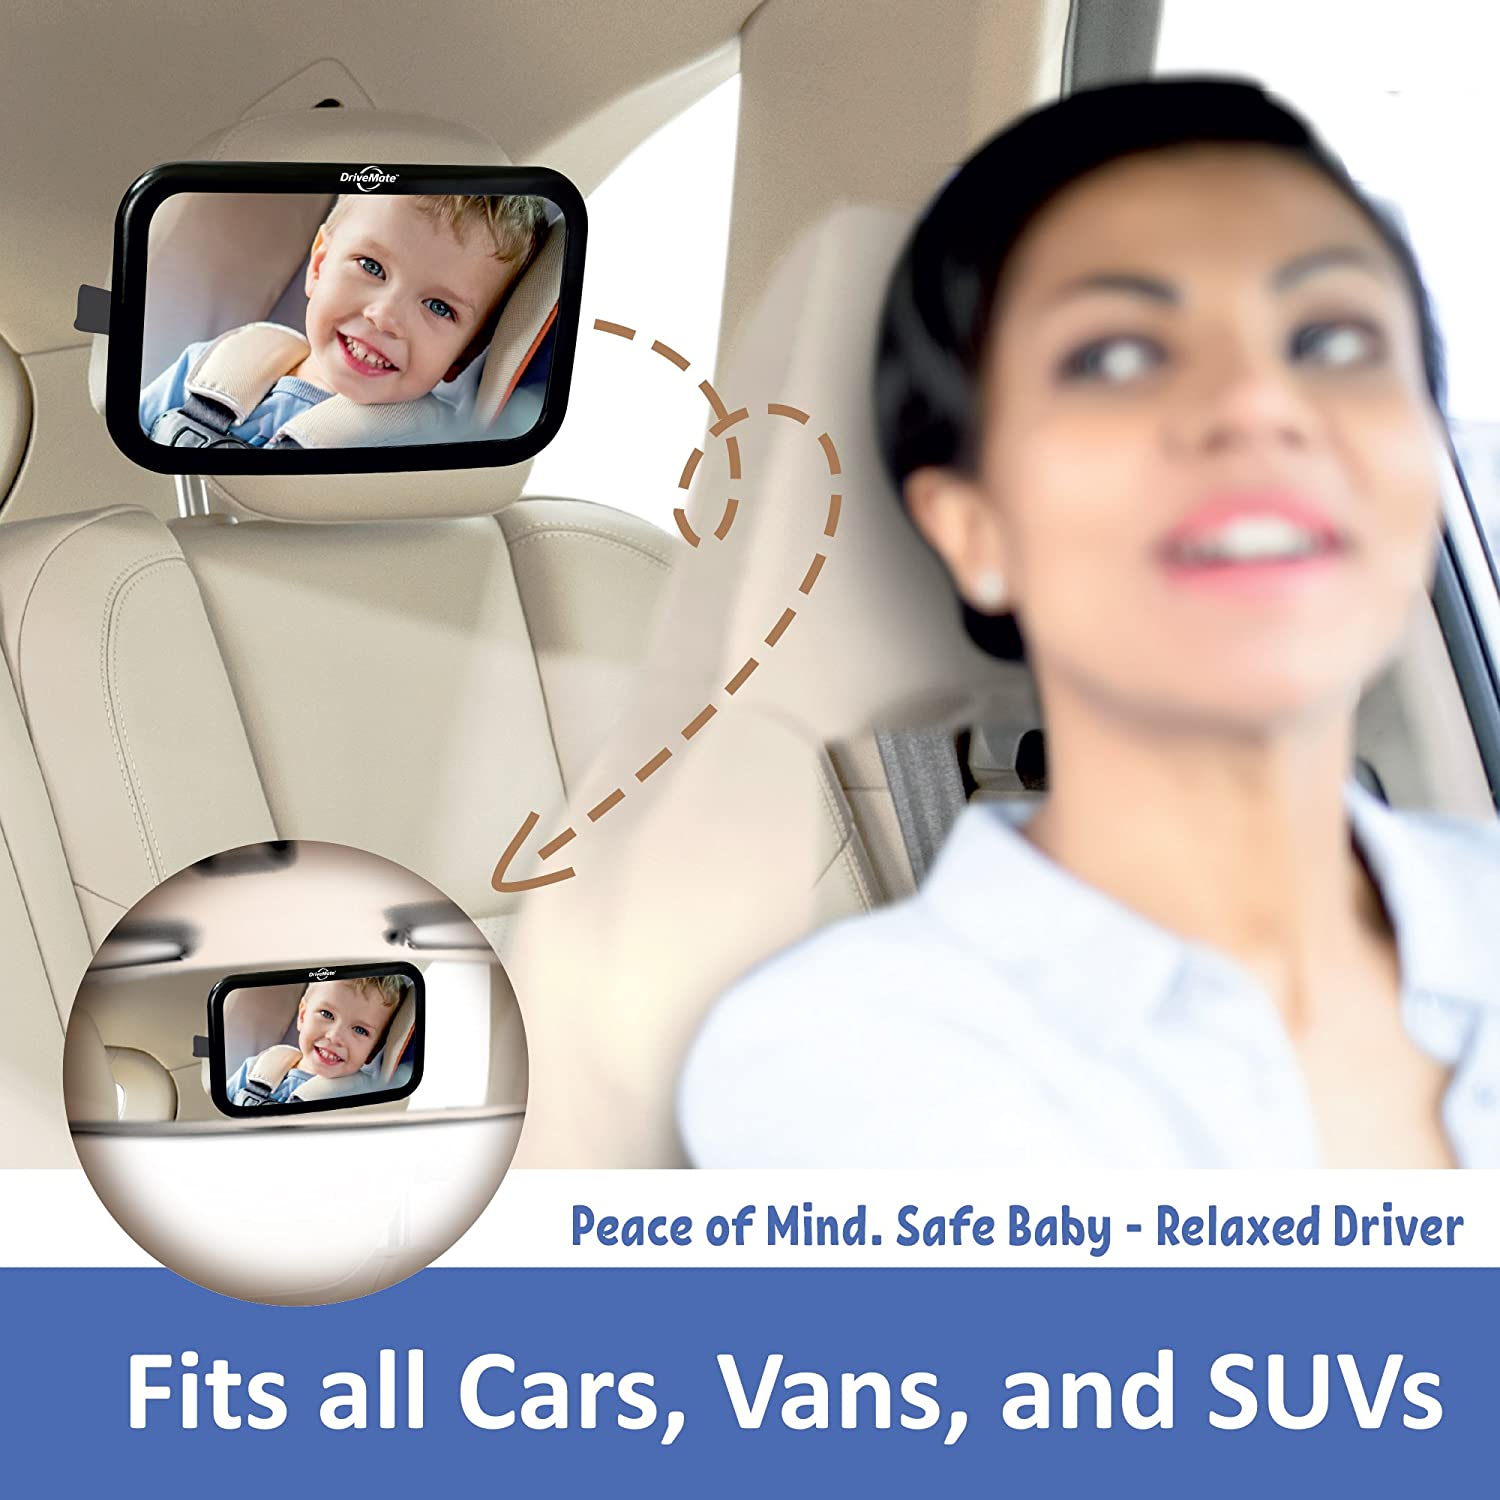 Fits Cars Toddlers Babies DriveMate Quick Glance Baby Car Mirror Large SUVs Wide Angle Backseat Rear View Clarity Trucks Shatterproof Safety Glass Adjustable Nylon Straps